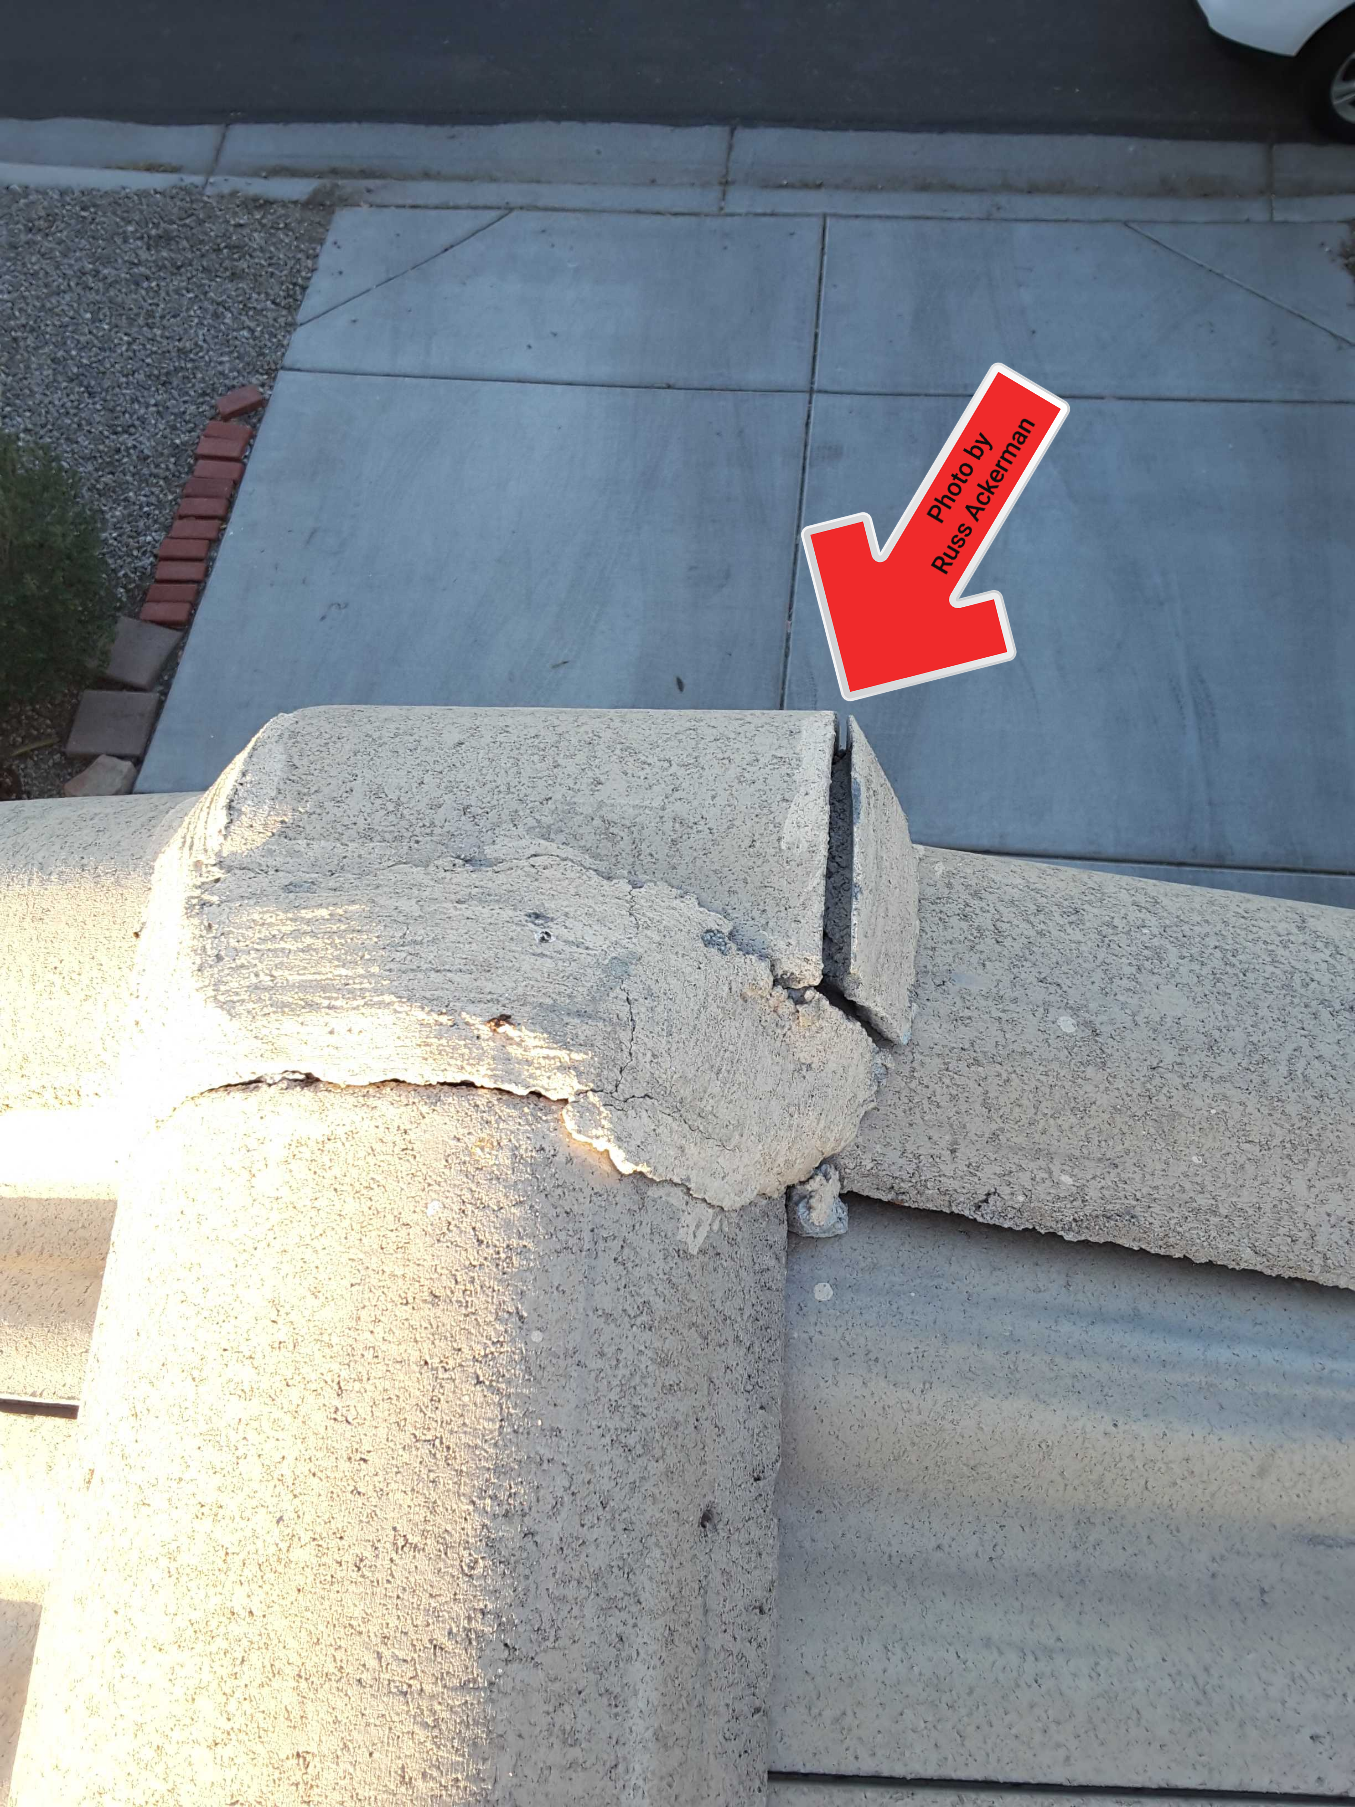 Cracked/deteriorated mud balls at roof ridge are in need of replacing to reduce the chance of water entry.